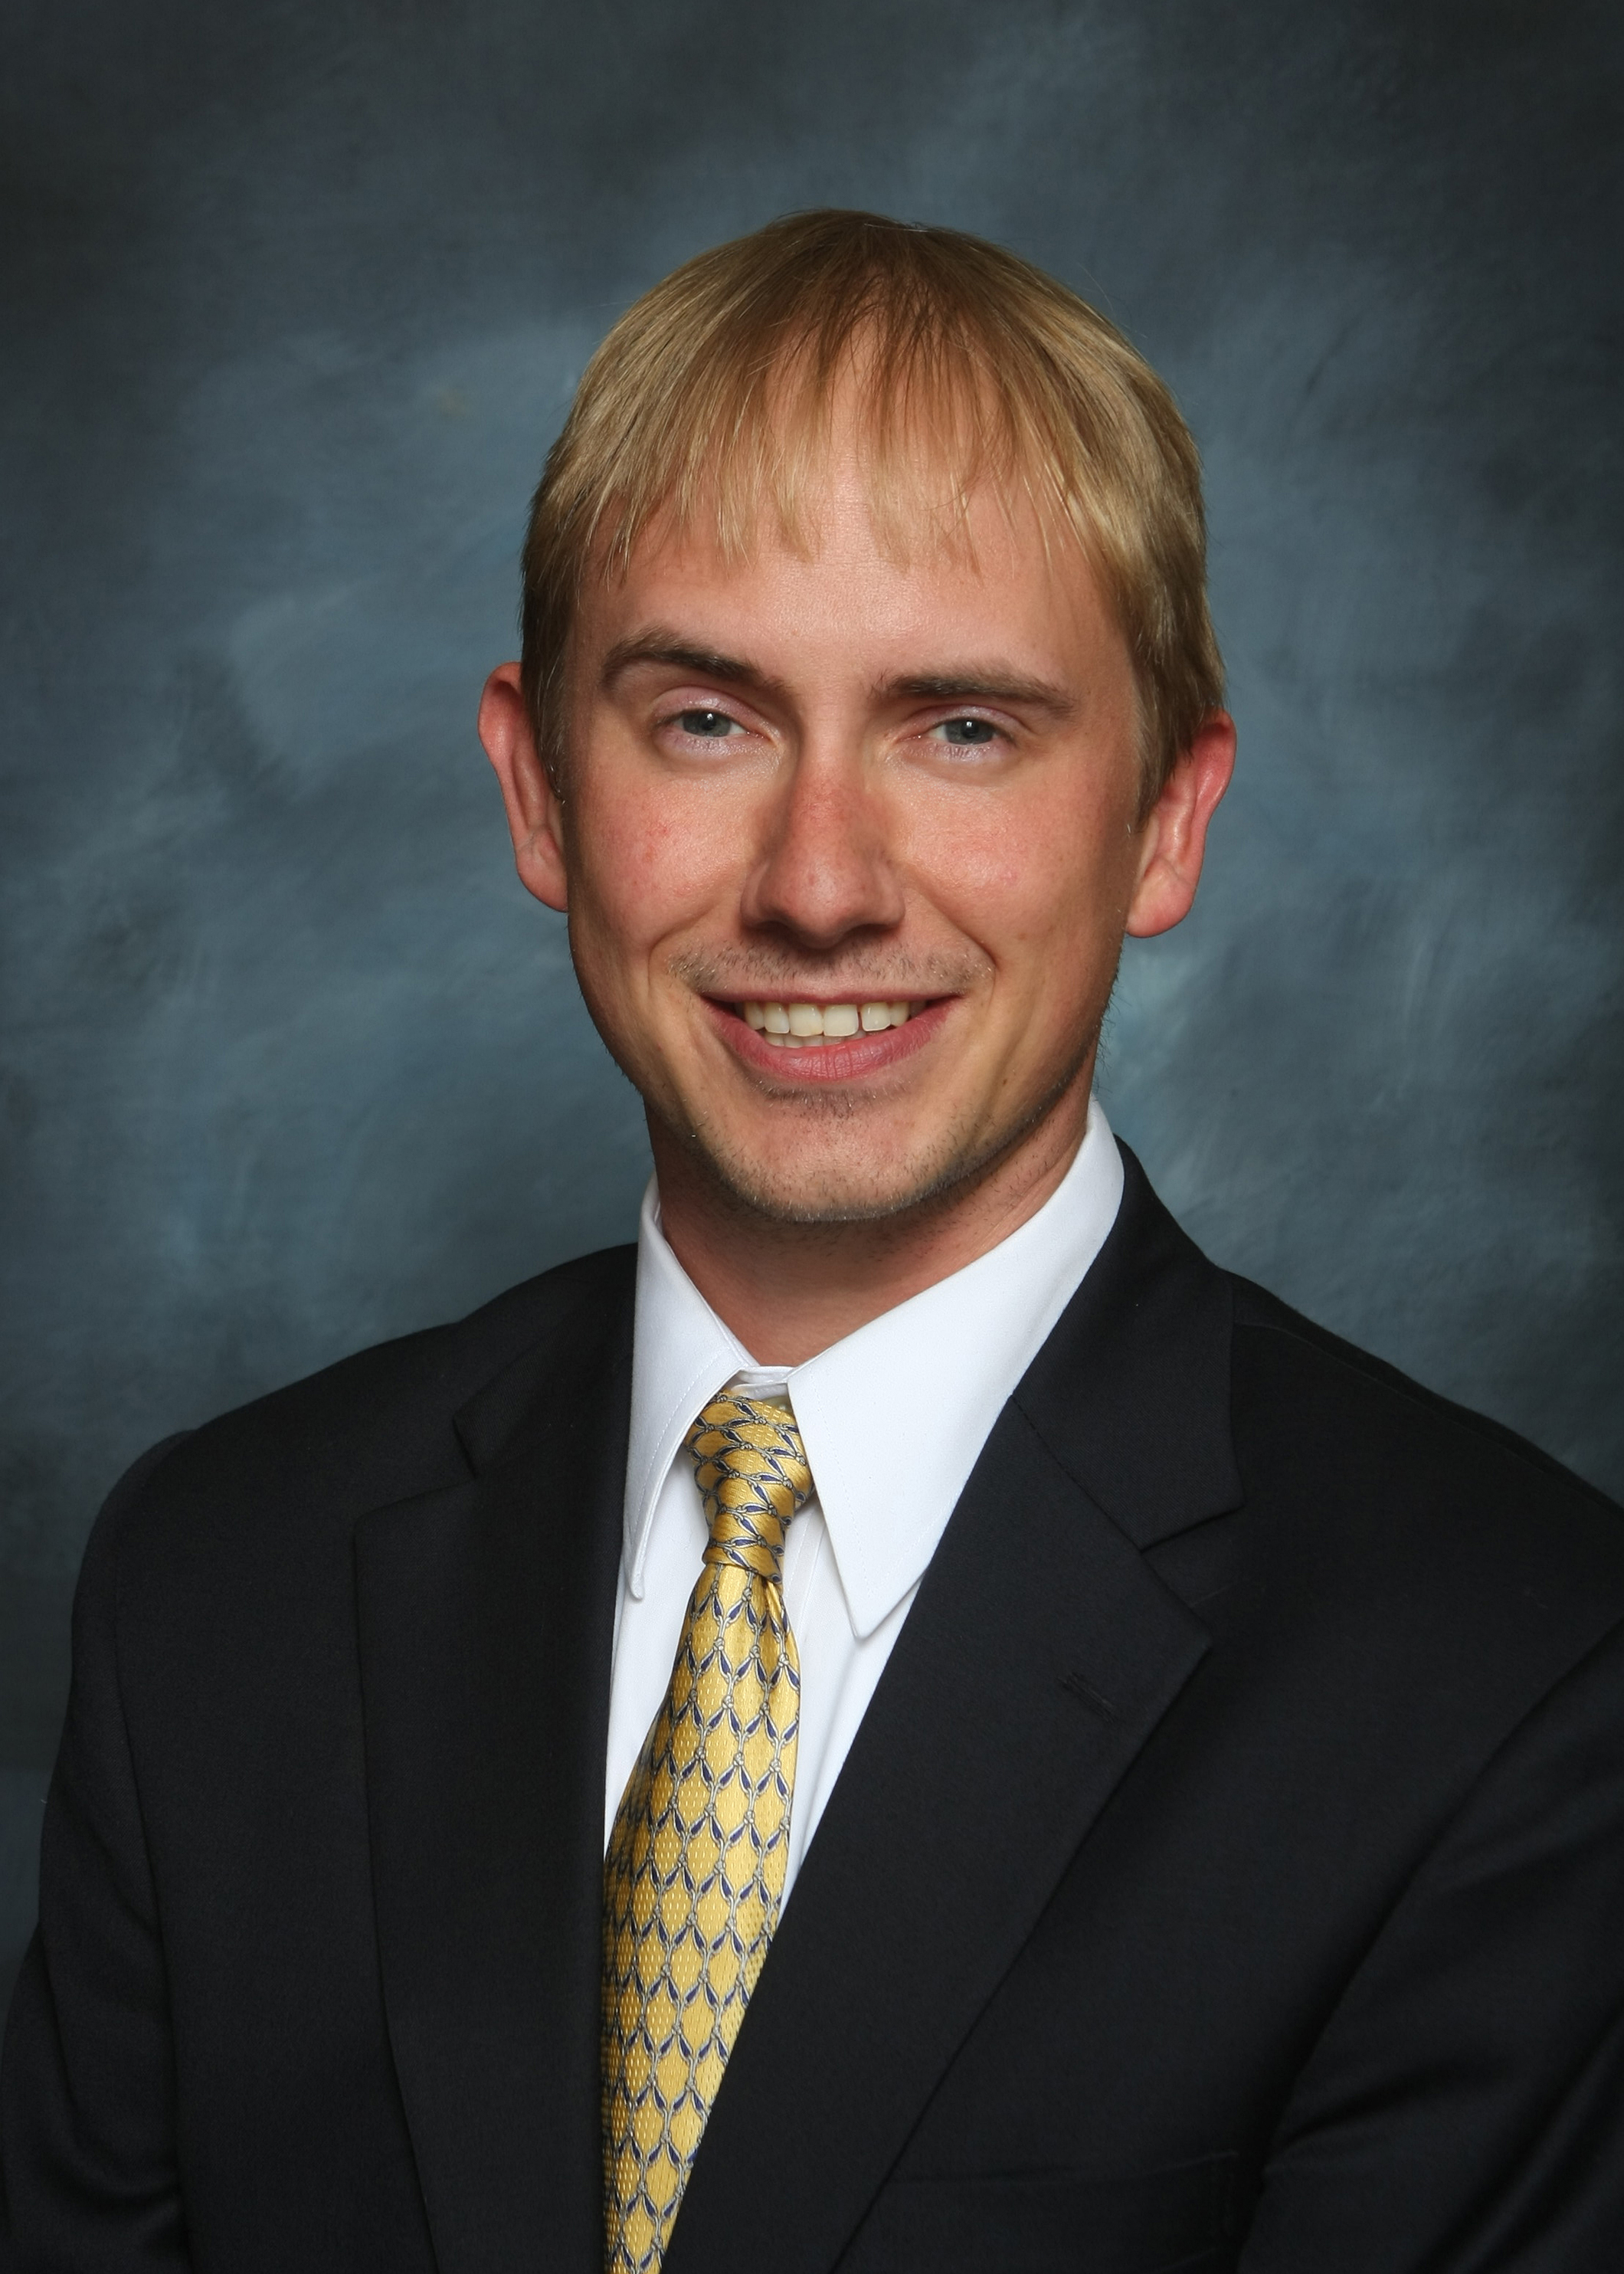 James Behne, financial advisor Saint Louis MO